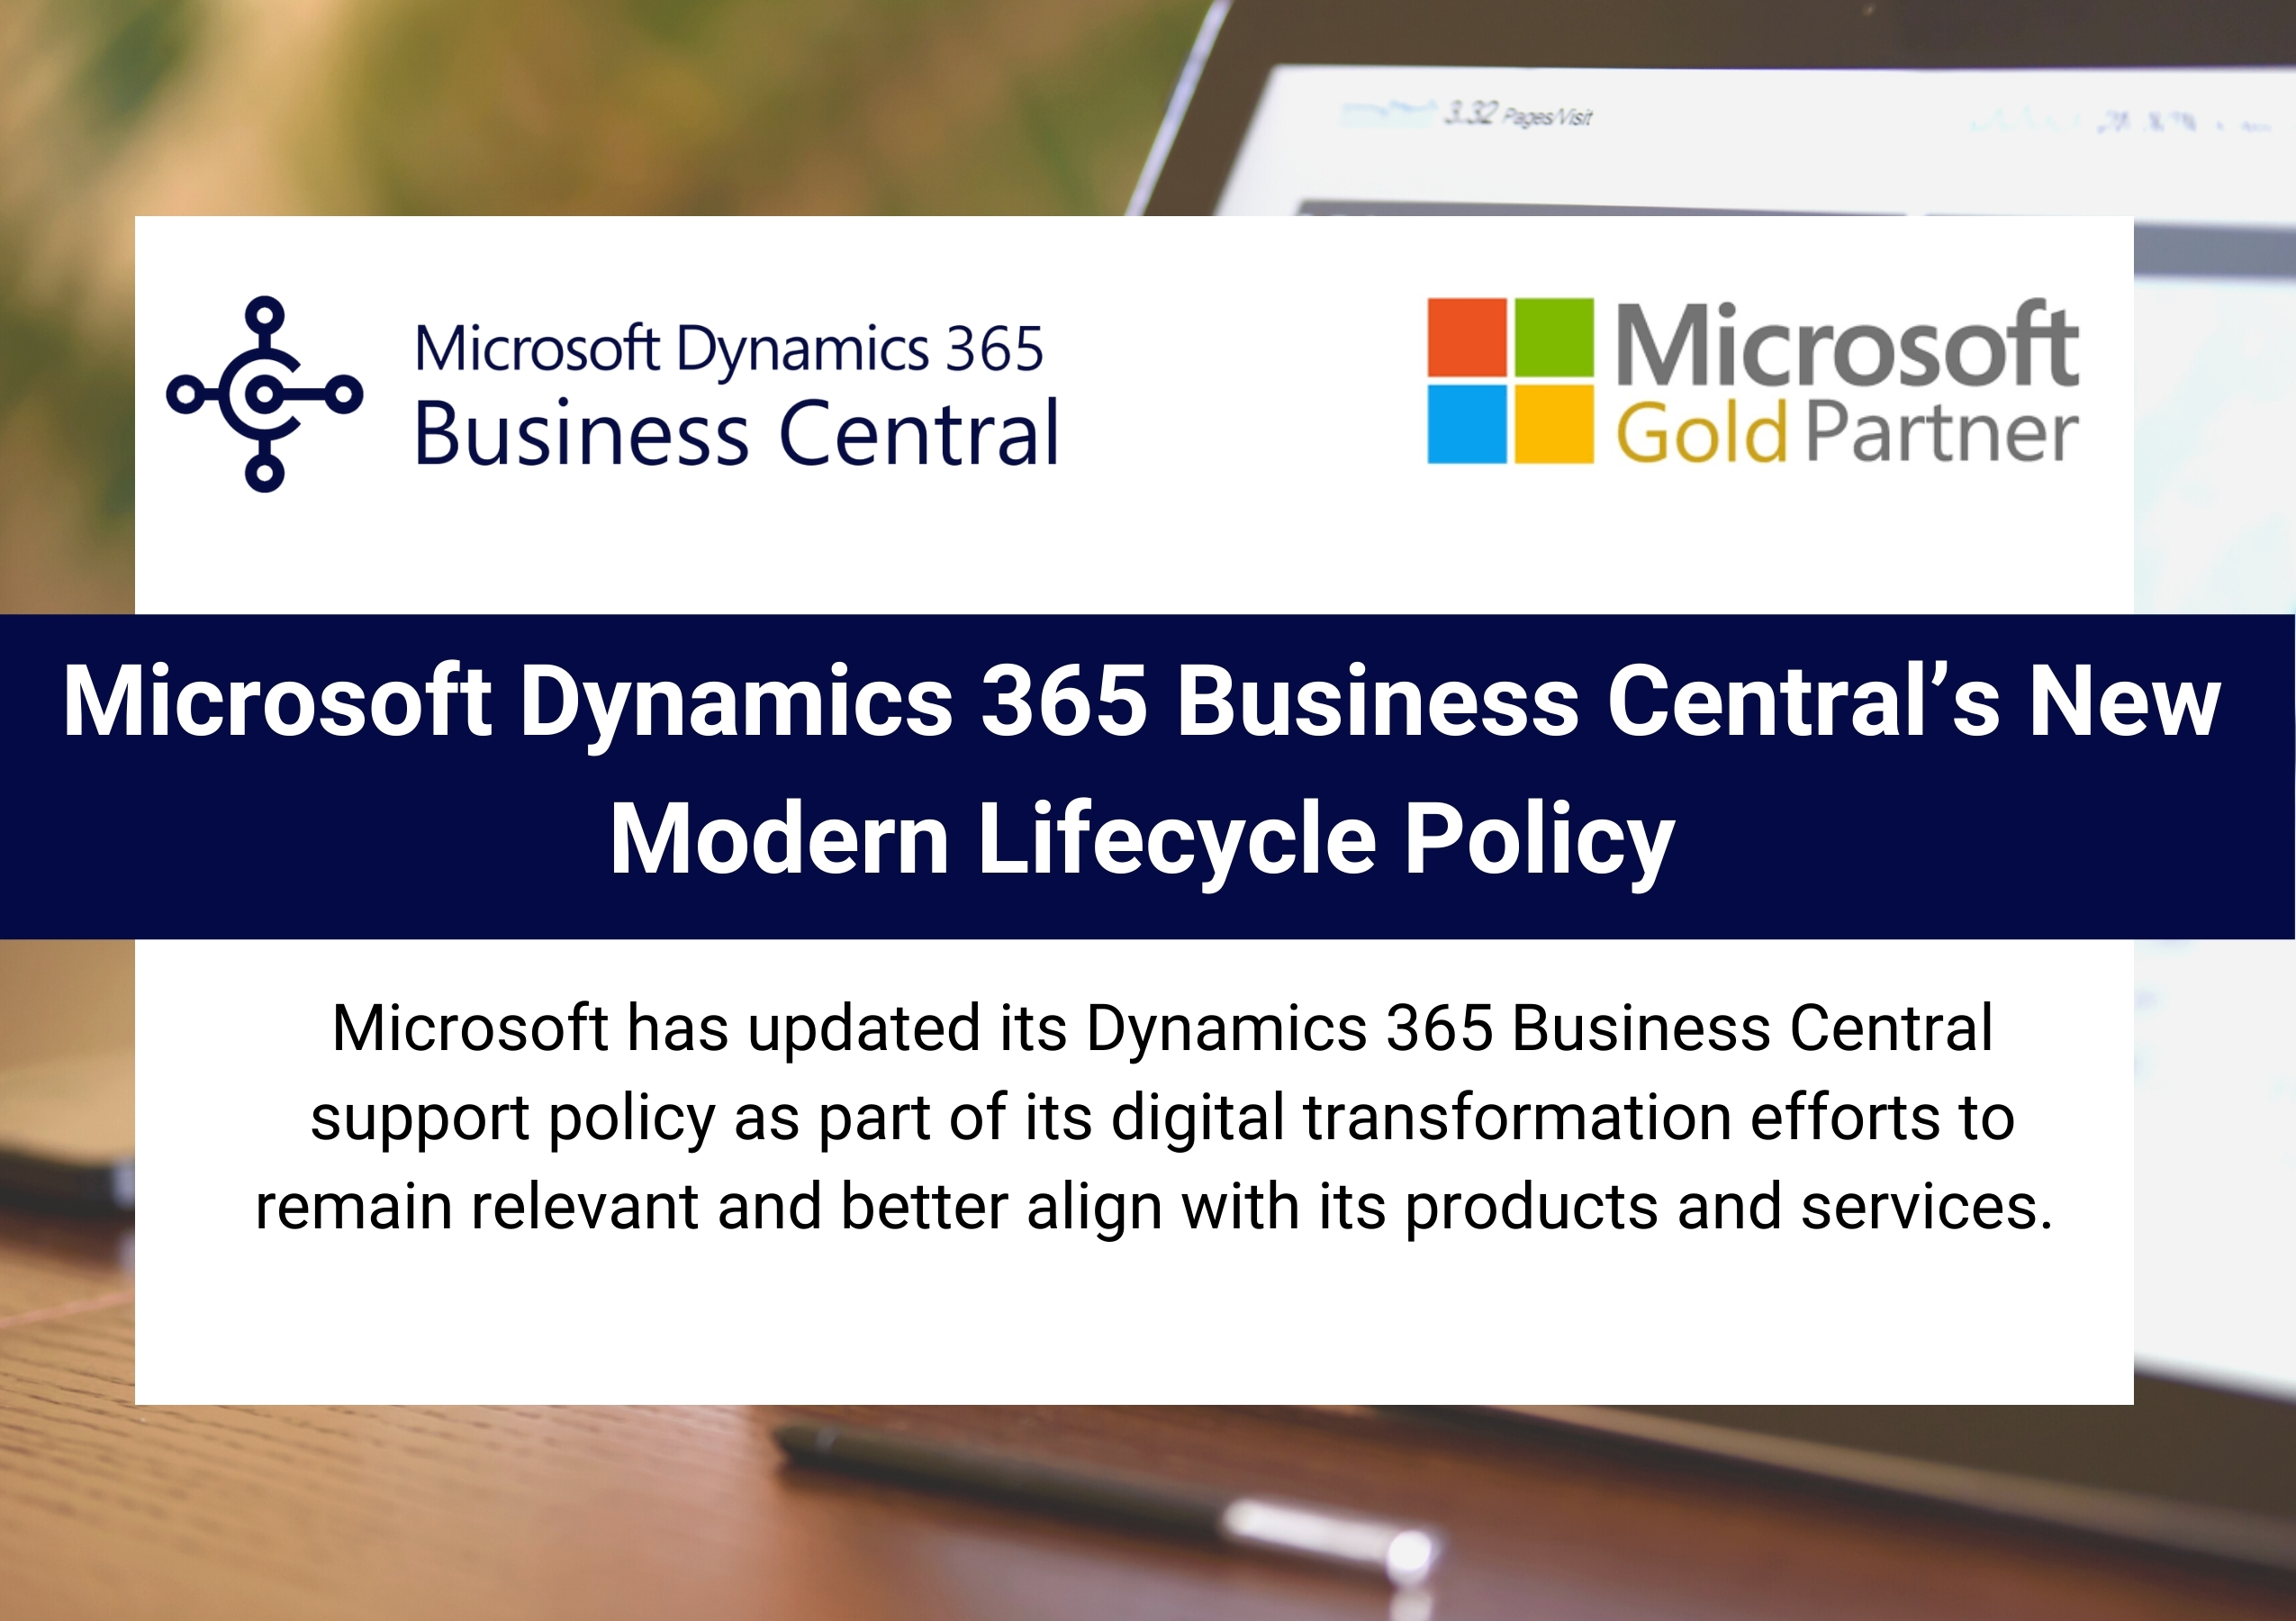 Business Central Lifecycle Policy